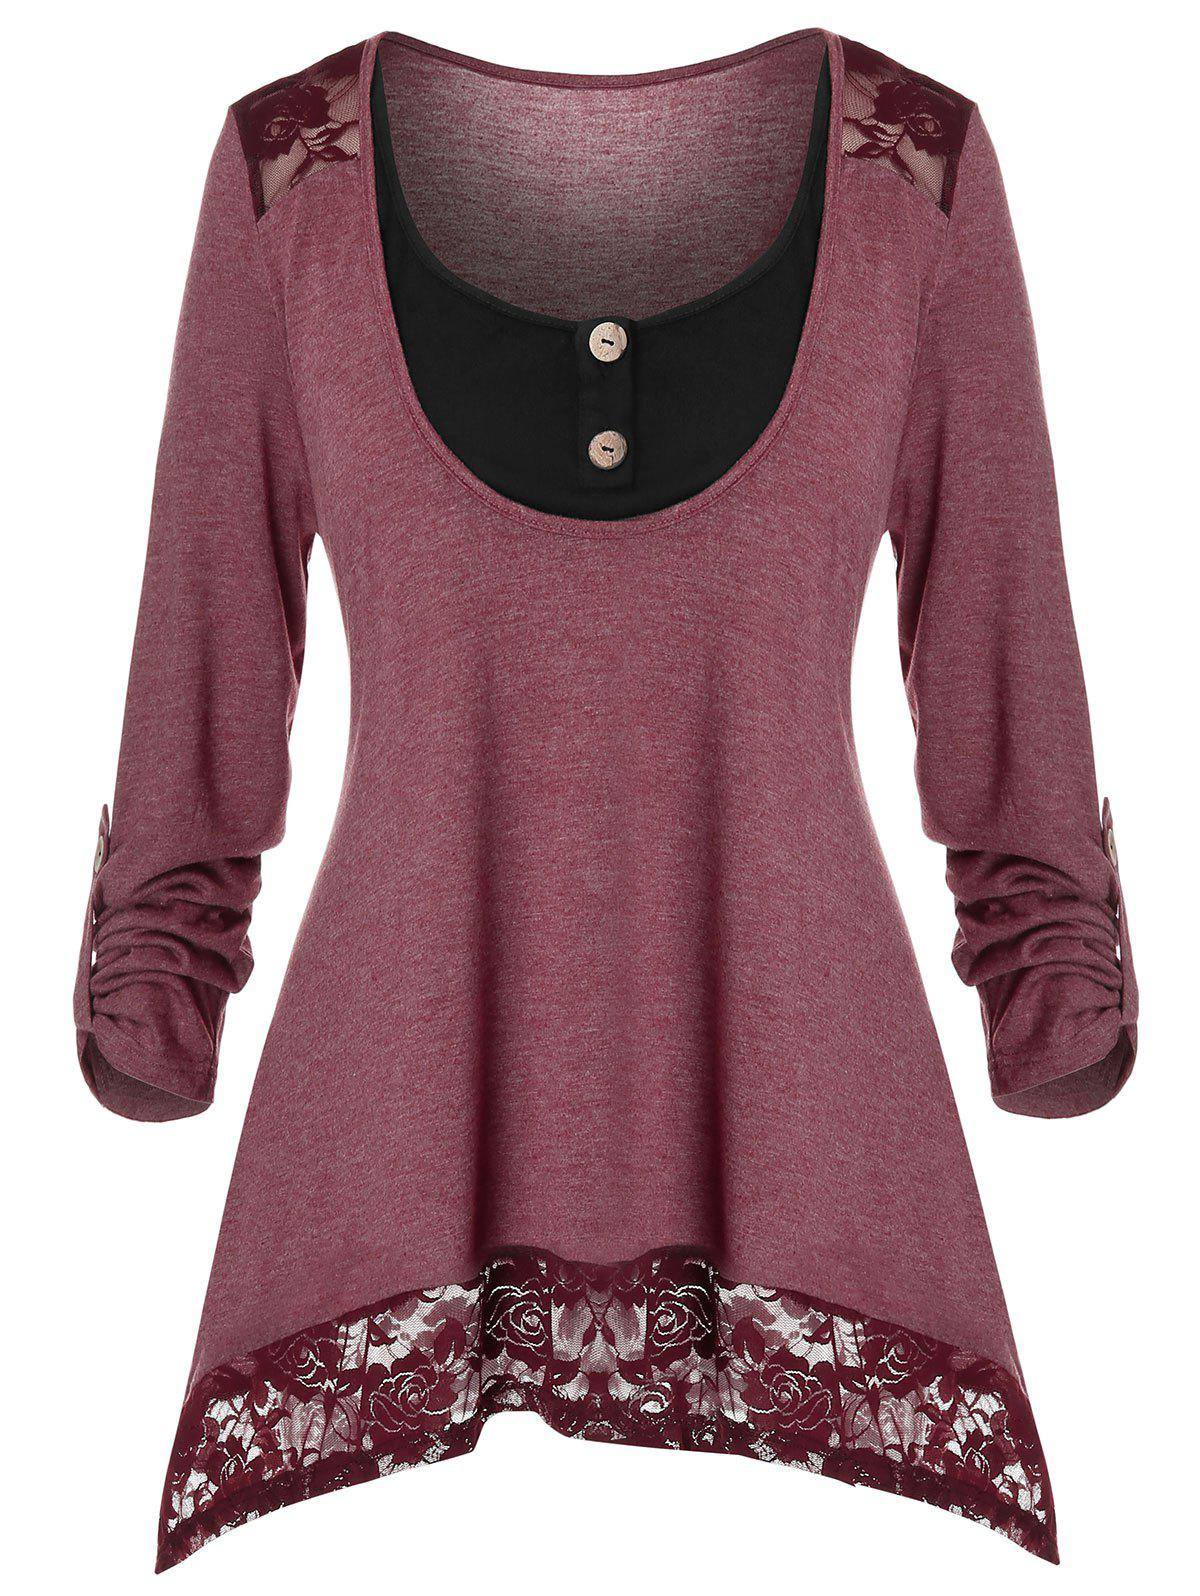 Plus Size Floral Lace Panel Long Sleeve Top - TULIP PINK 5X